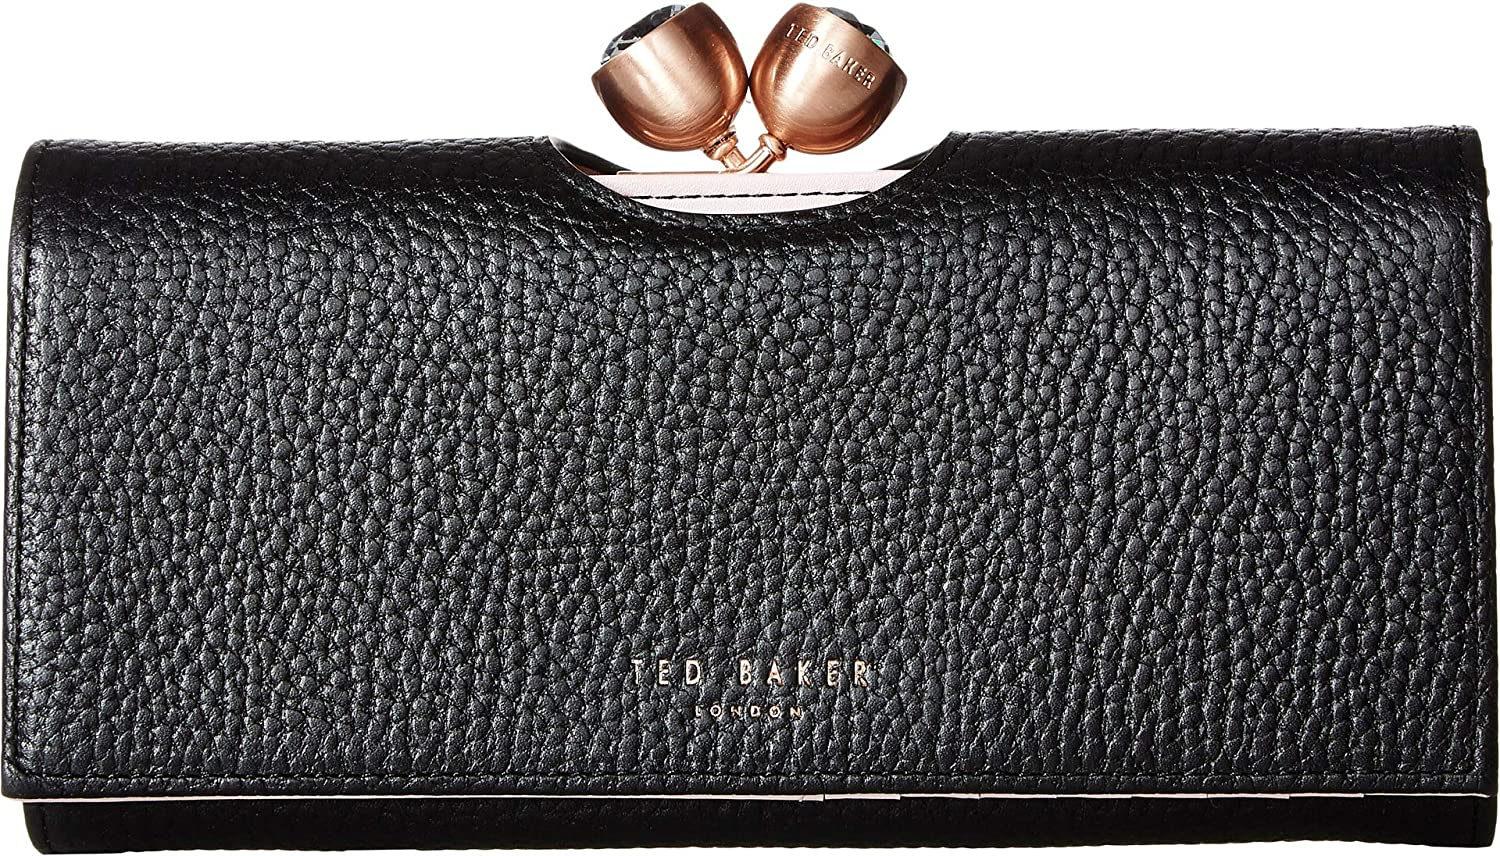 7eef8e0d84 Ted Baker Muscovy Wallet black: Amazon.co.uk: Luggage